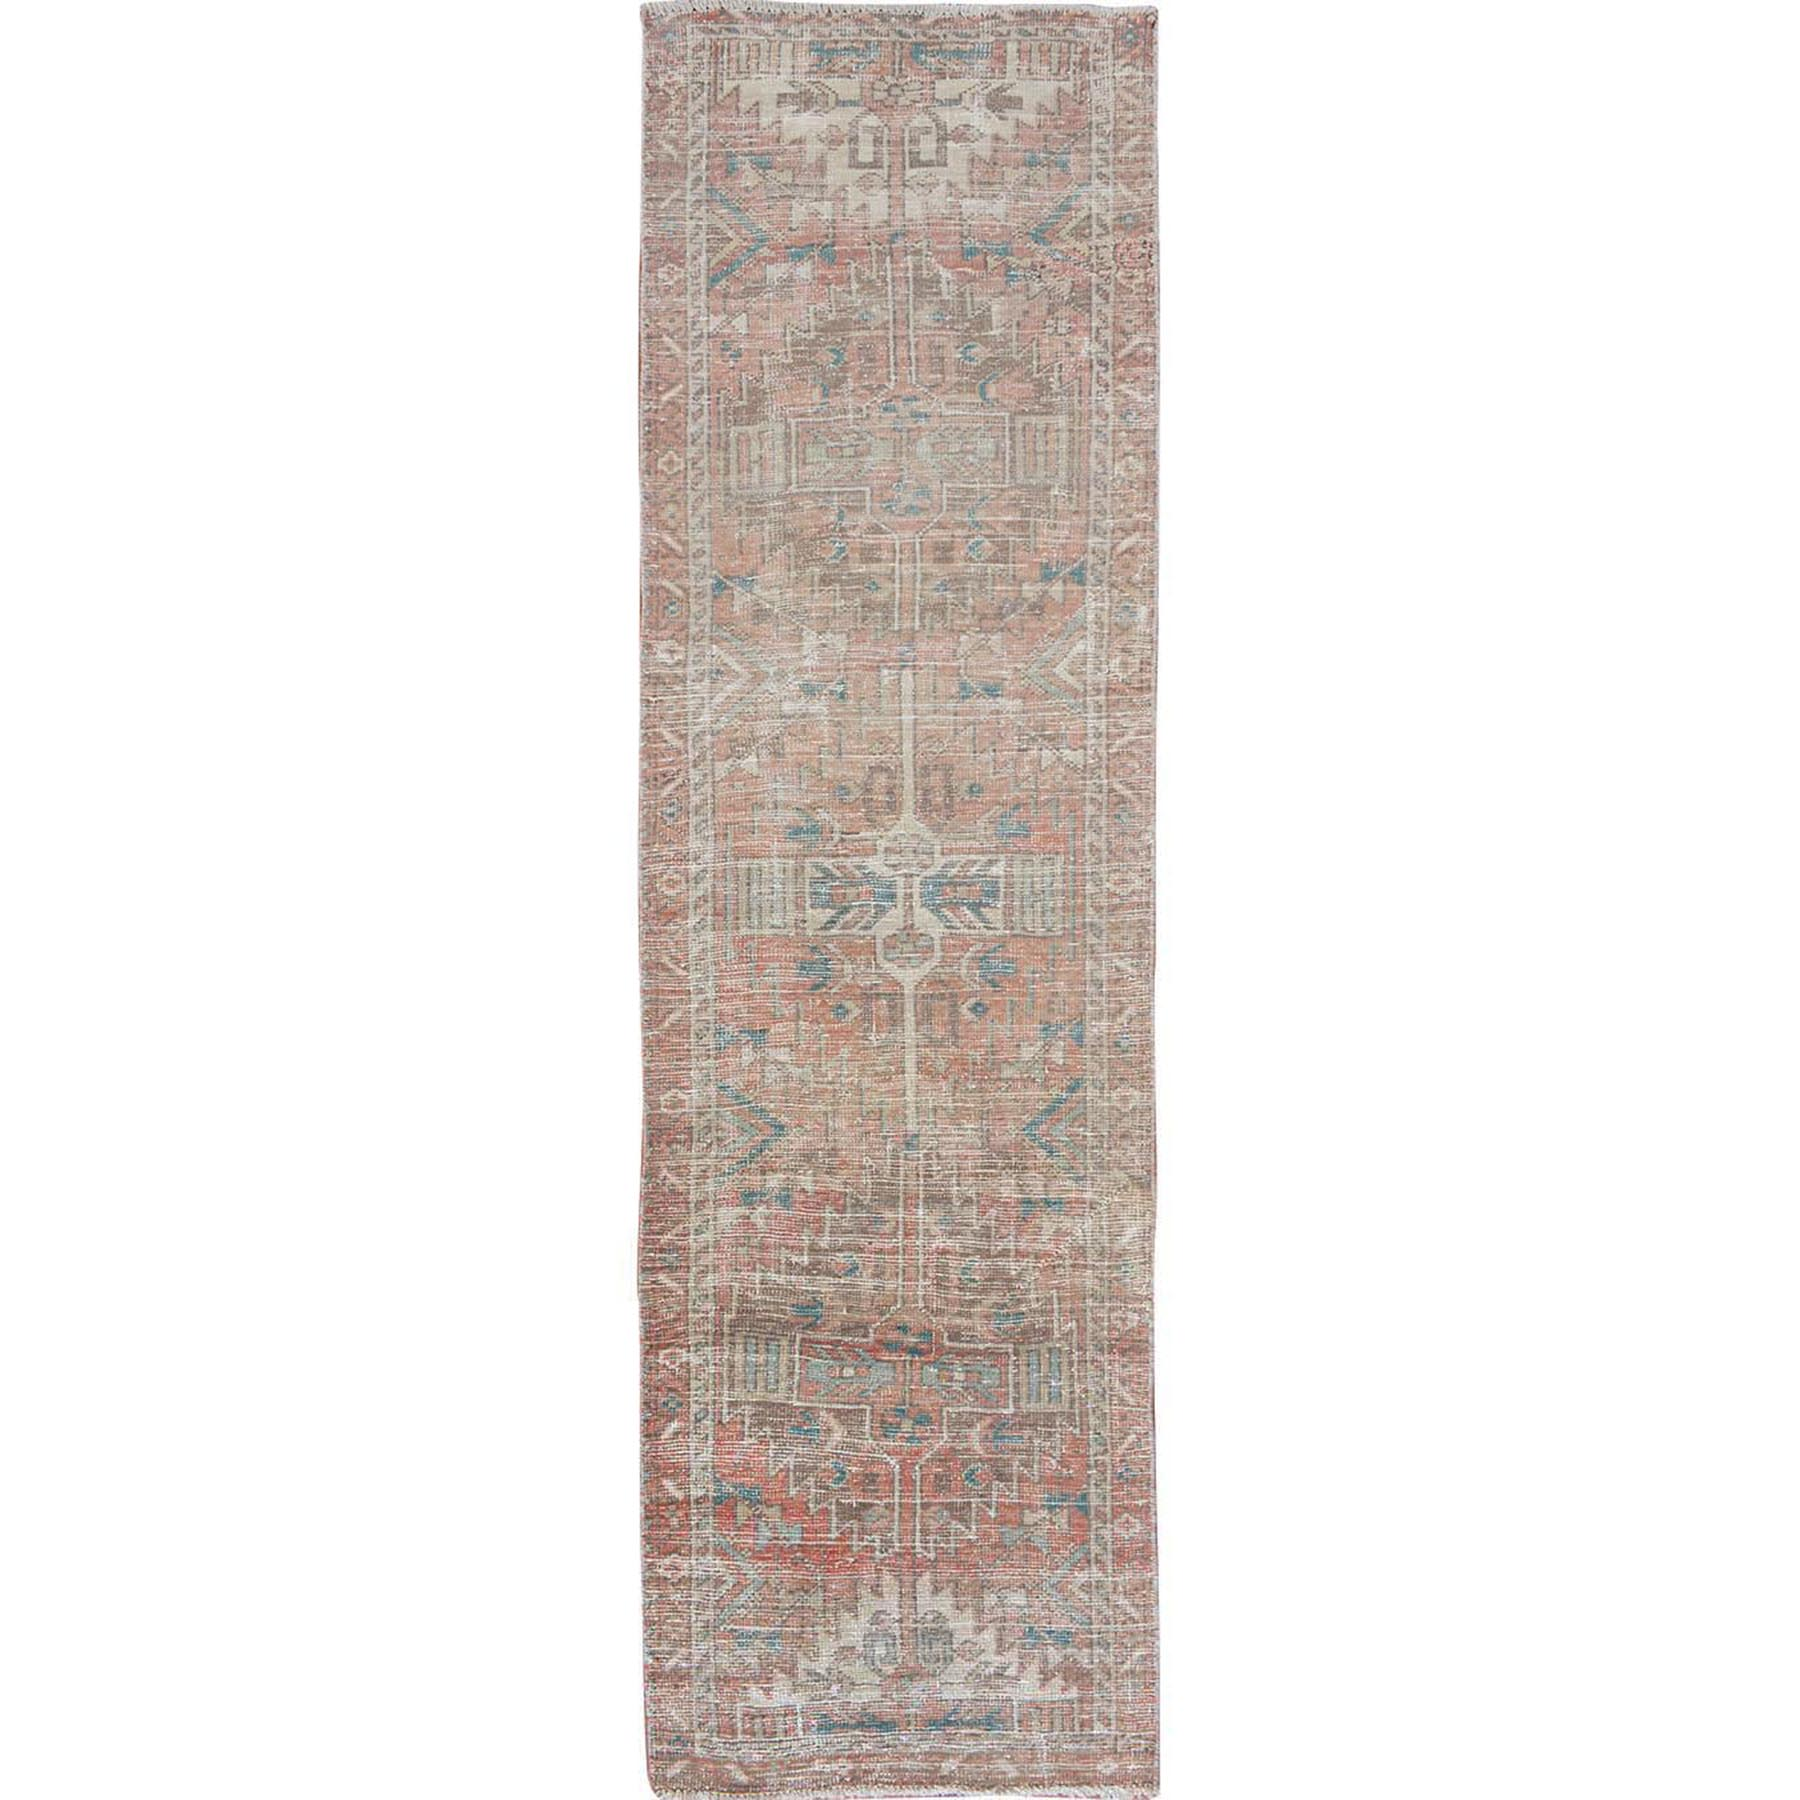 "2'9""x10'5"" Natural Colors Vintage and Worn Down Clean Persian Heriz Hand Woven Runner Oriental Rug"